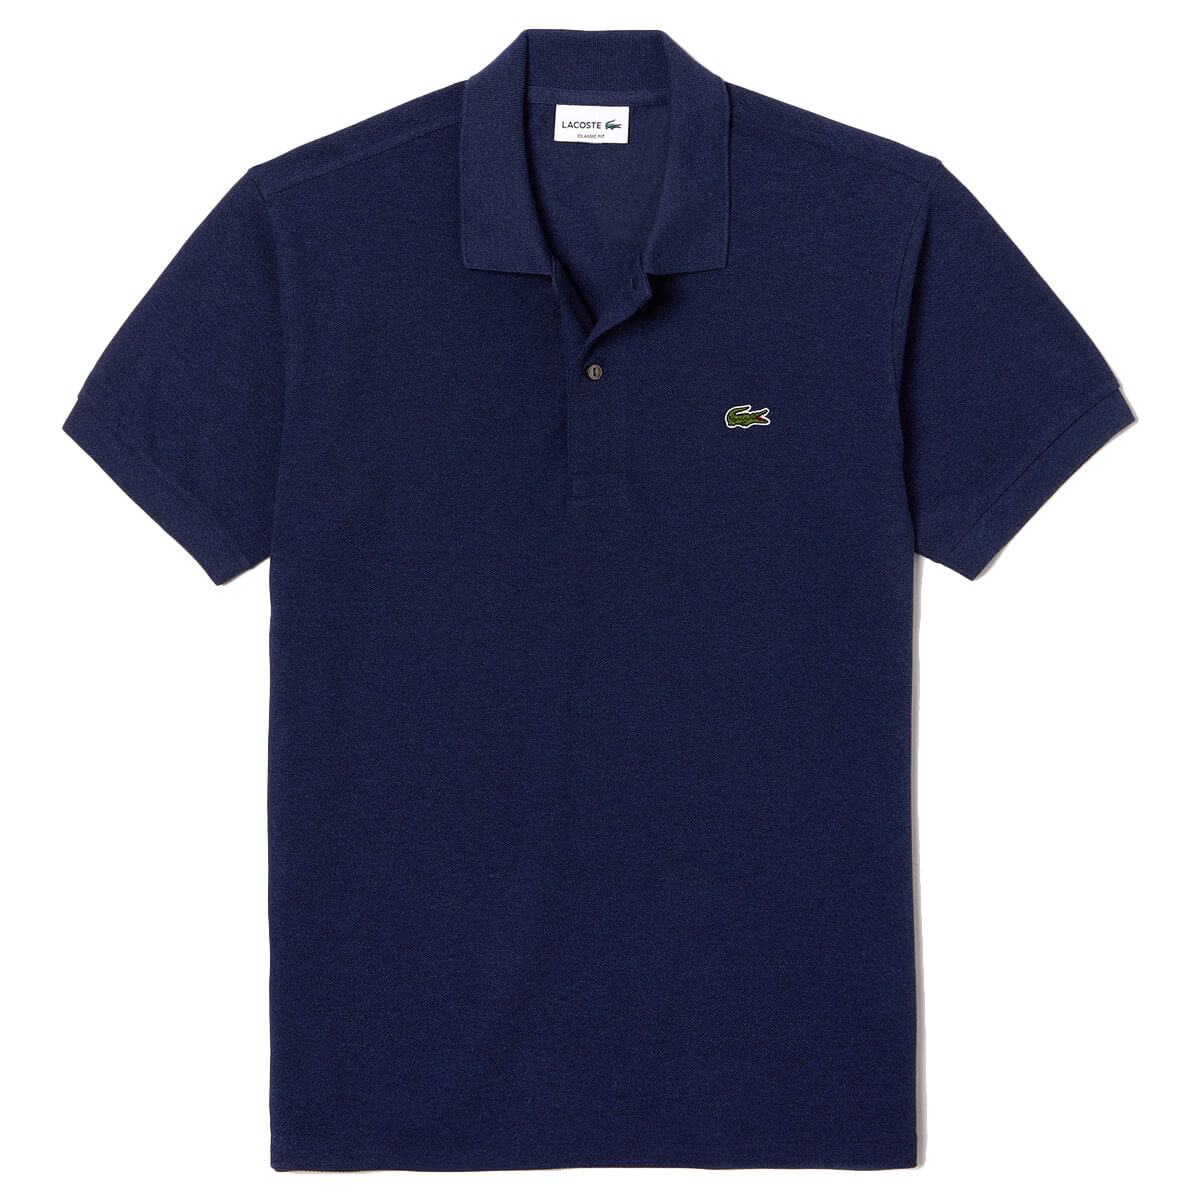 Lacoste mens l1264 original mottled short sleeve polo for Lacoste polo shirts ebay